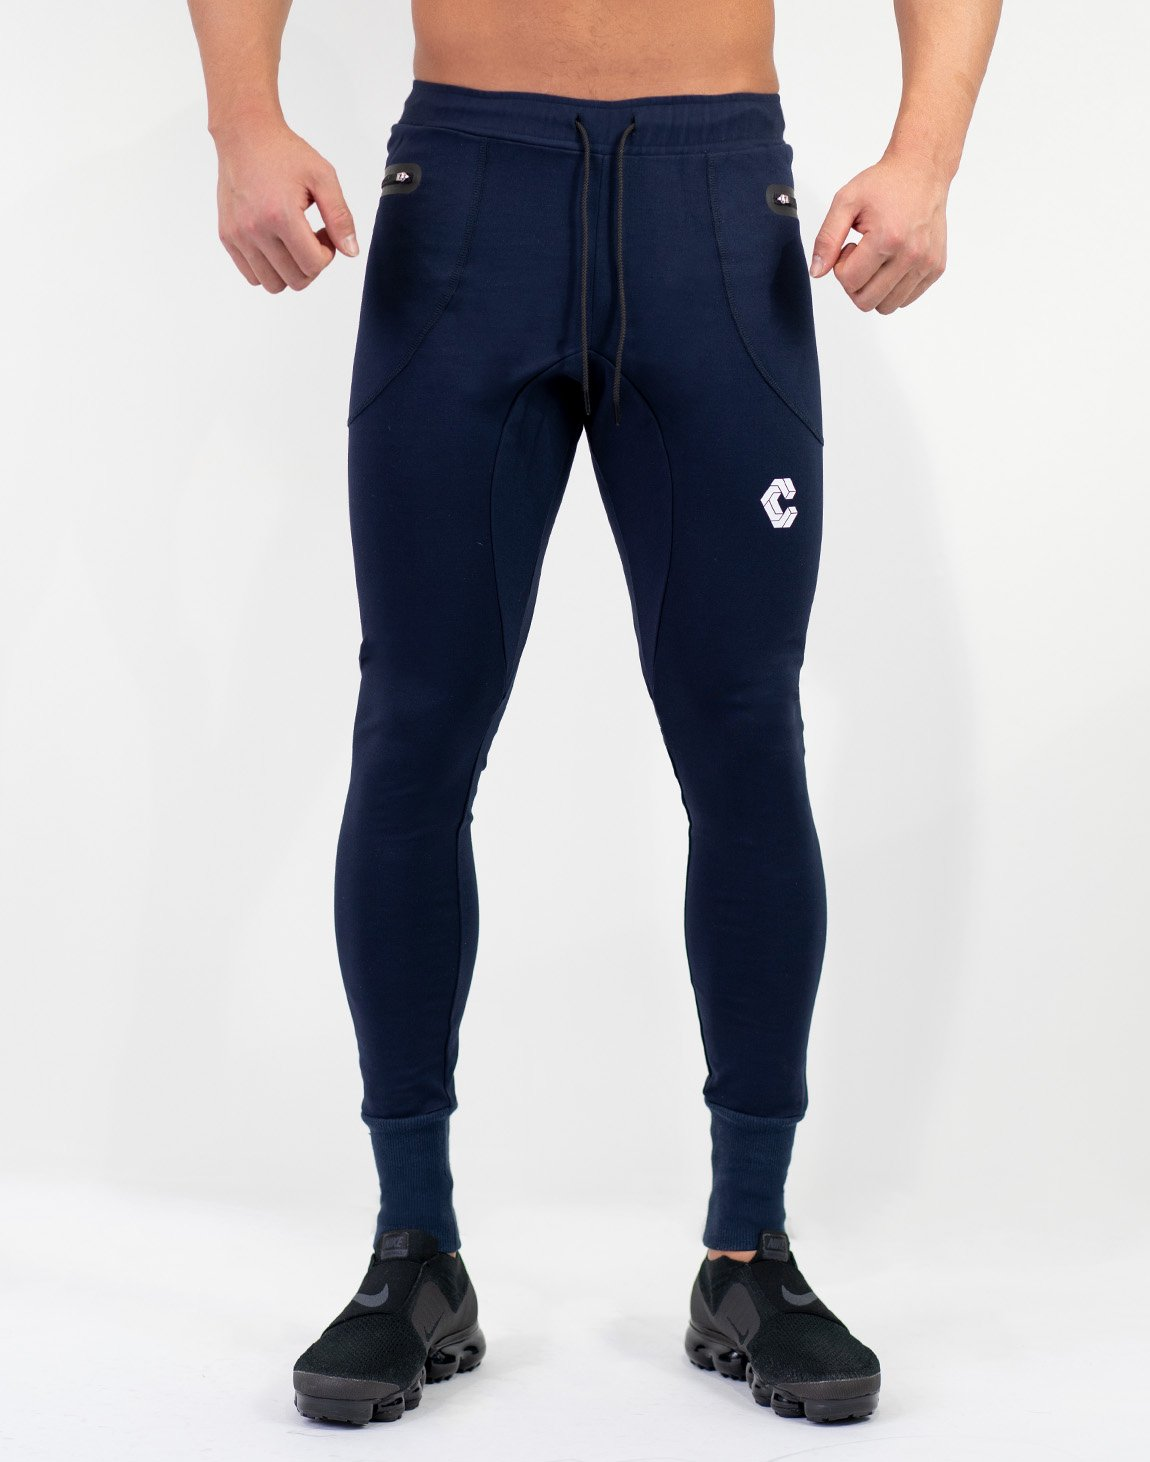 <img class='new_mark_img1' src='https://img.shop-pro.jp/img/new/icons1.gif' style='border:none;display:inline;margin:0px;padding:0px;width:auto;' />Mode Calf Logo jogger Pants Navy